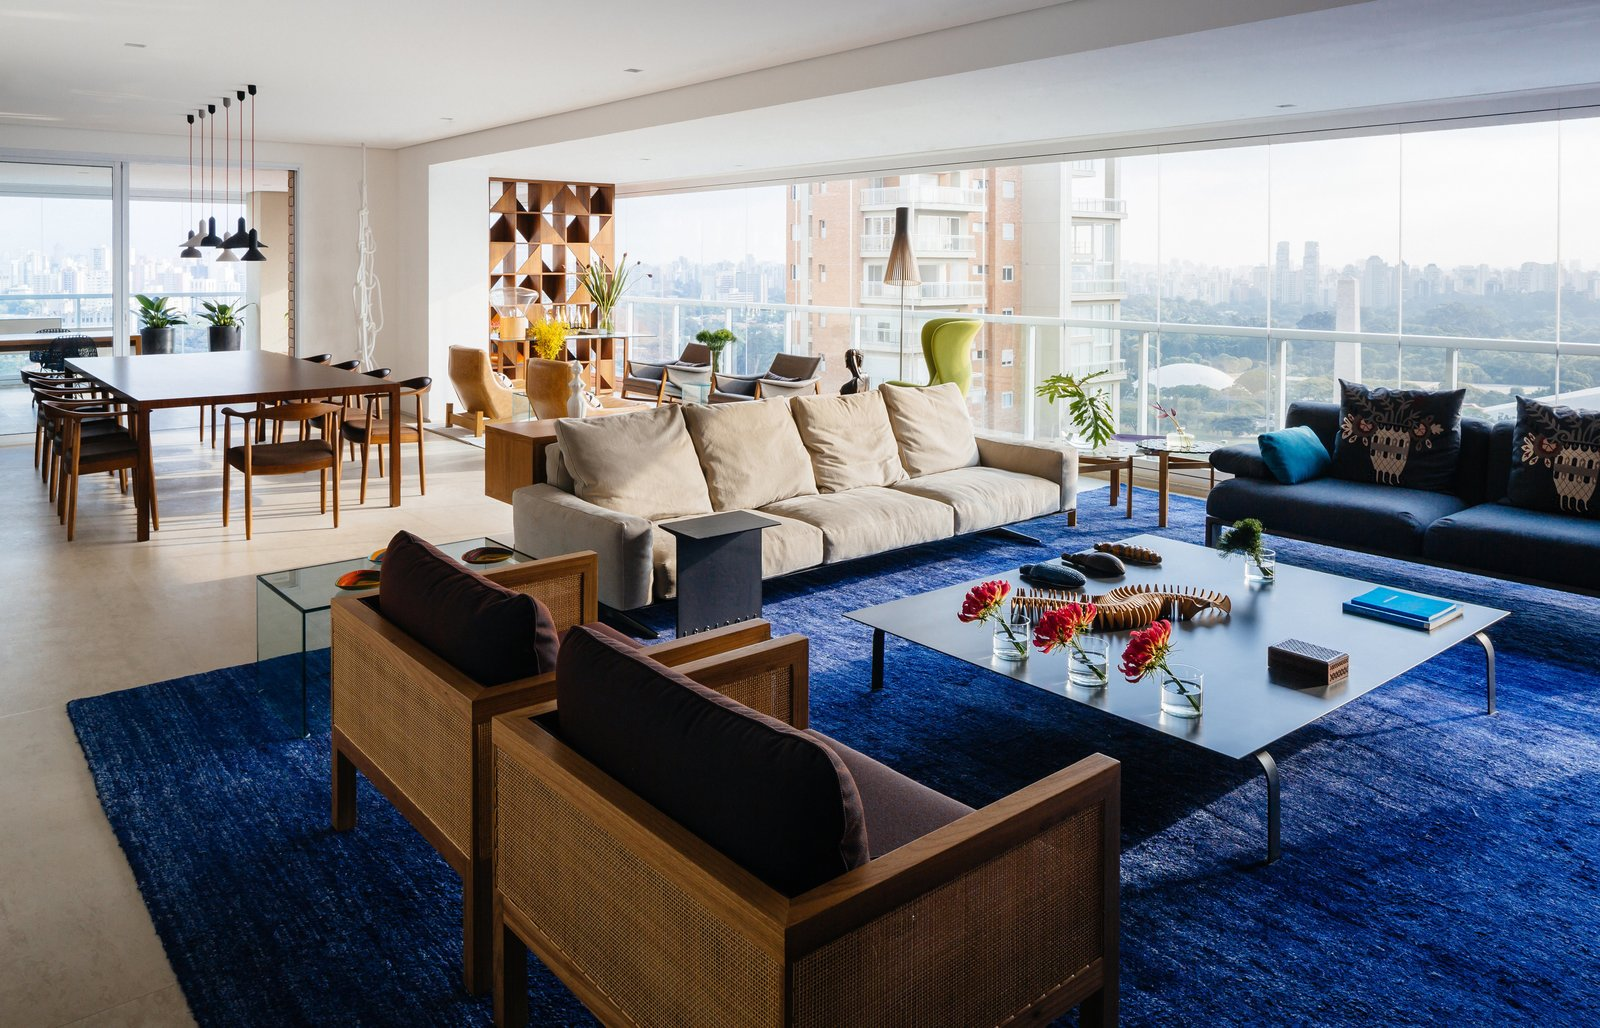 Furniture groupings and bright, dramatic accents—like the sapphire banana-fiber rug by Kamy Maison in the main living area—further divide the interior into distinct yet flexible stations. The trio of seating options includes wood-and-cane Cosme Velho armchairs by Claudia Moreira Salles, a plush Soft Dream leather sofa by Antonio Citterio for Flexform, and a blue Fergana sofa by Patricia Urquiola for Moroso. Just beyond, a Fina table, also by Salles, joins Marta chairs by Aristeu Pires and Torch pendants by Sylvain Willenz to form the dining area. Tagged: Living Room, Bench, Sofa, Recliner, End Tables, Coffee Tables, Sectional, Chair, Lamps, Floor Lighting, Ceiling Lighting, Recessed Lighting, Pendant Lighting, and Rug Floor.  Photo 4 of 9 in Overlooking a Niemeyer Masterpiece, This Flat is Filled with Brazilian Modern Gems